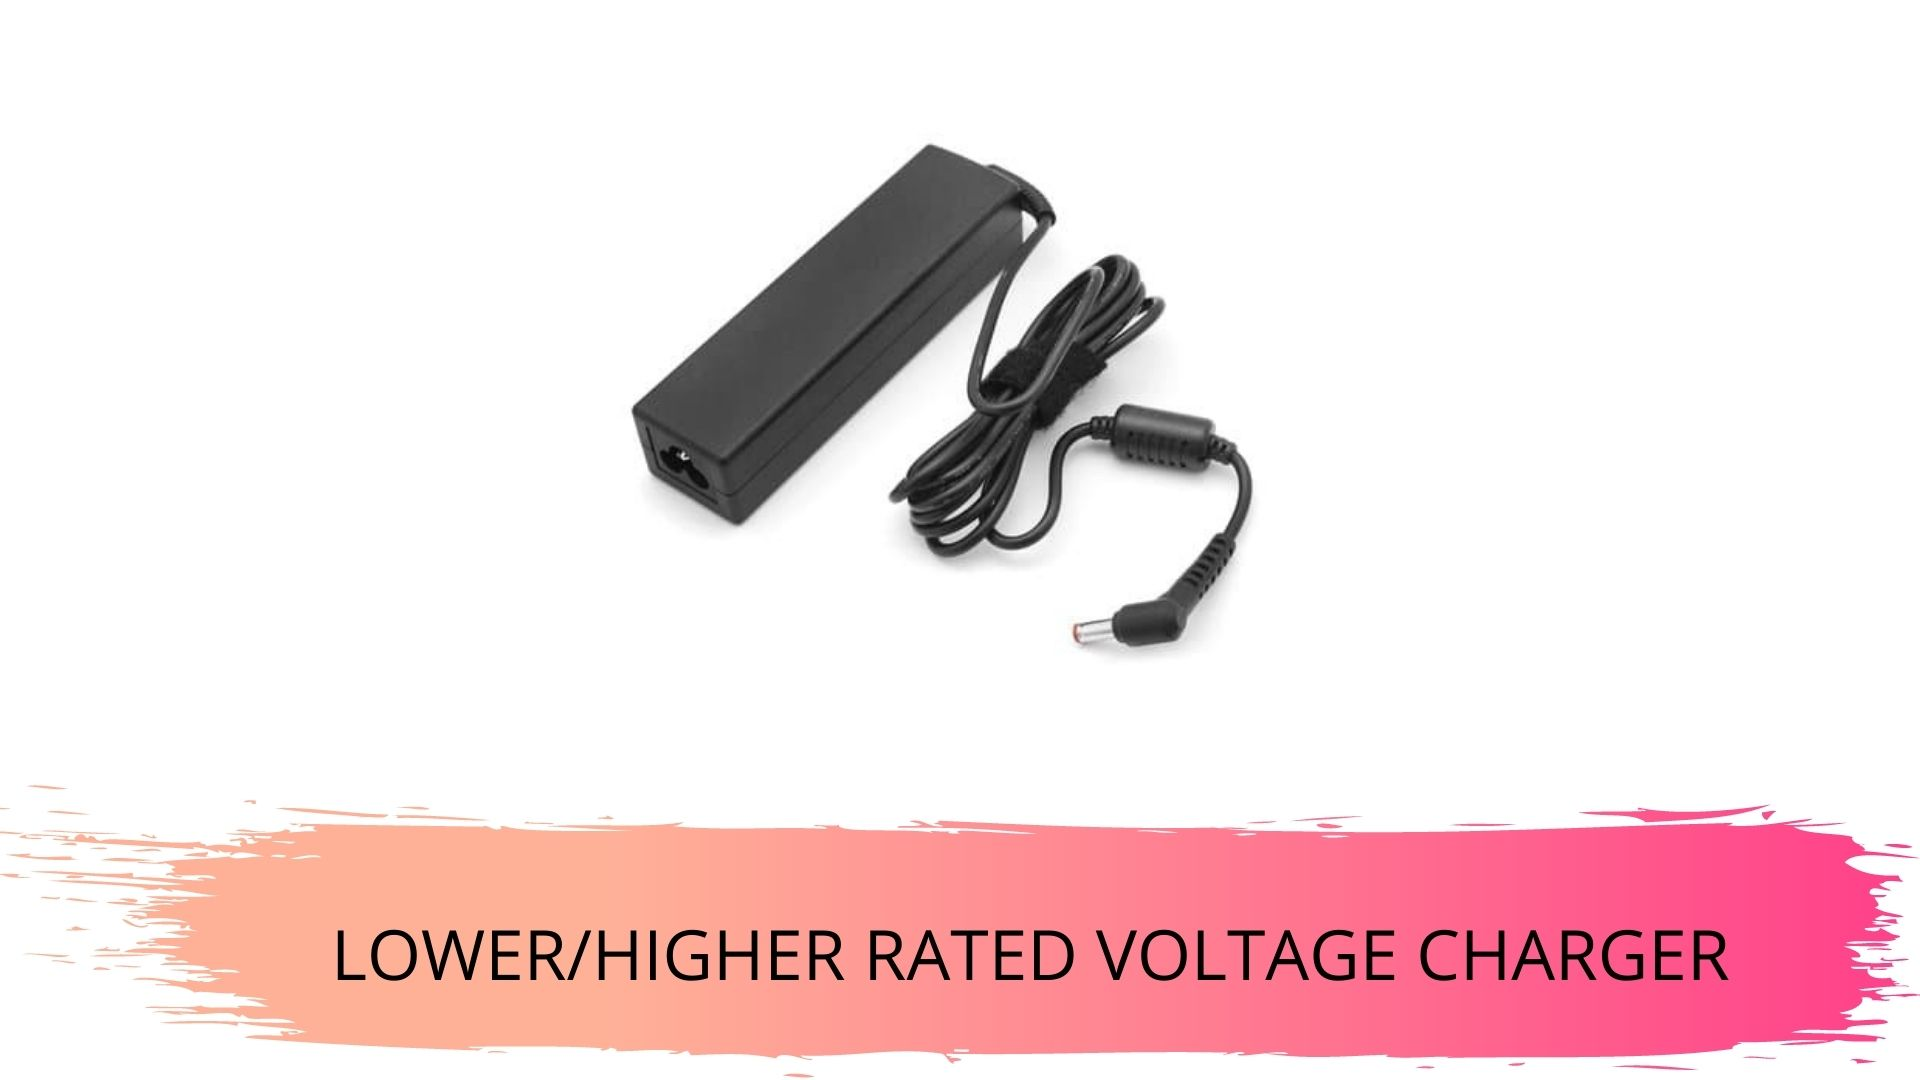 using lower/higher rated voltage charger